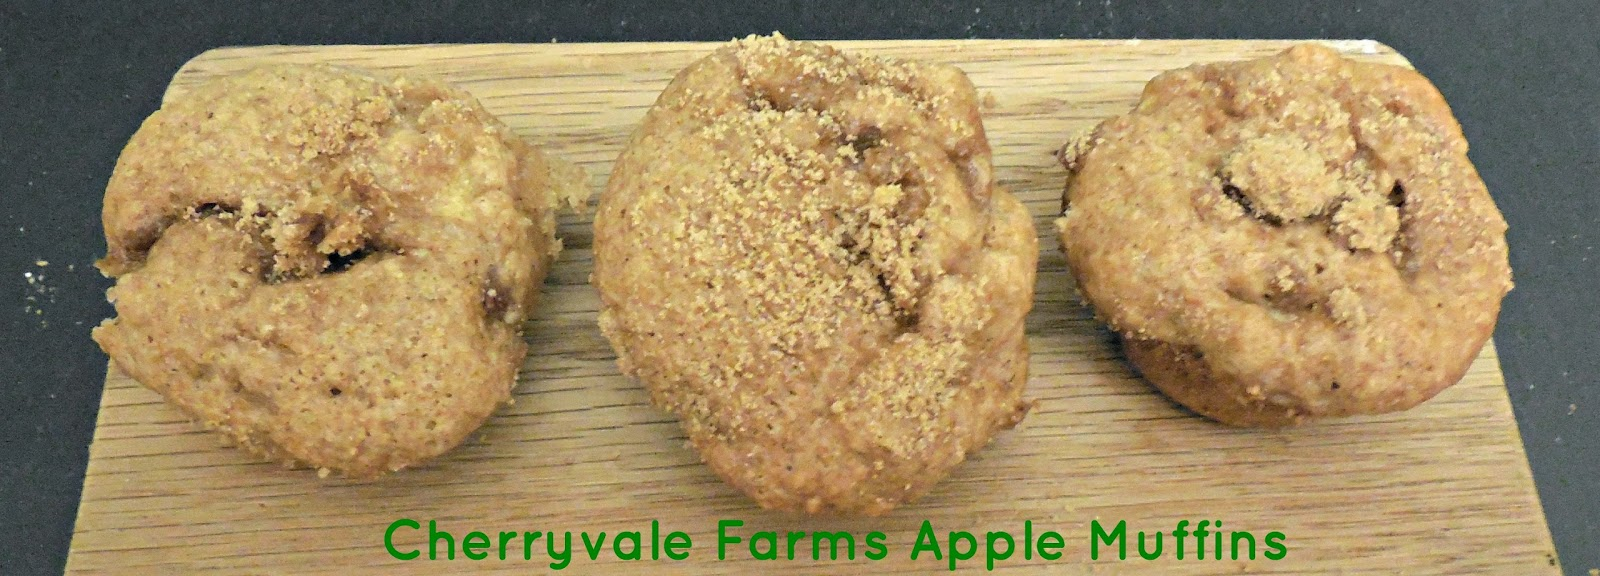 Cherryvale Farms Apple Muffins